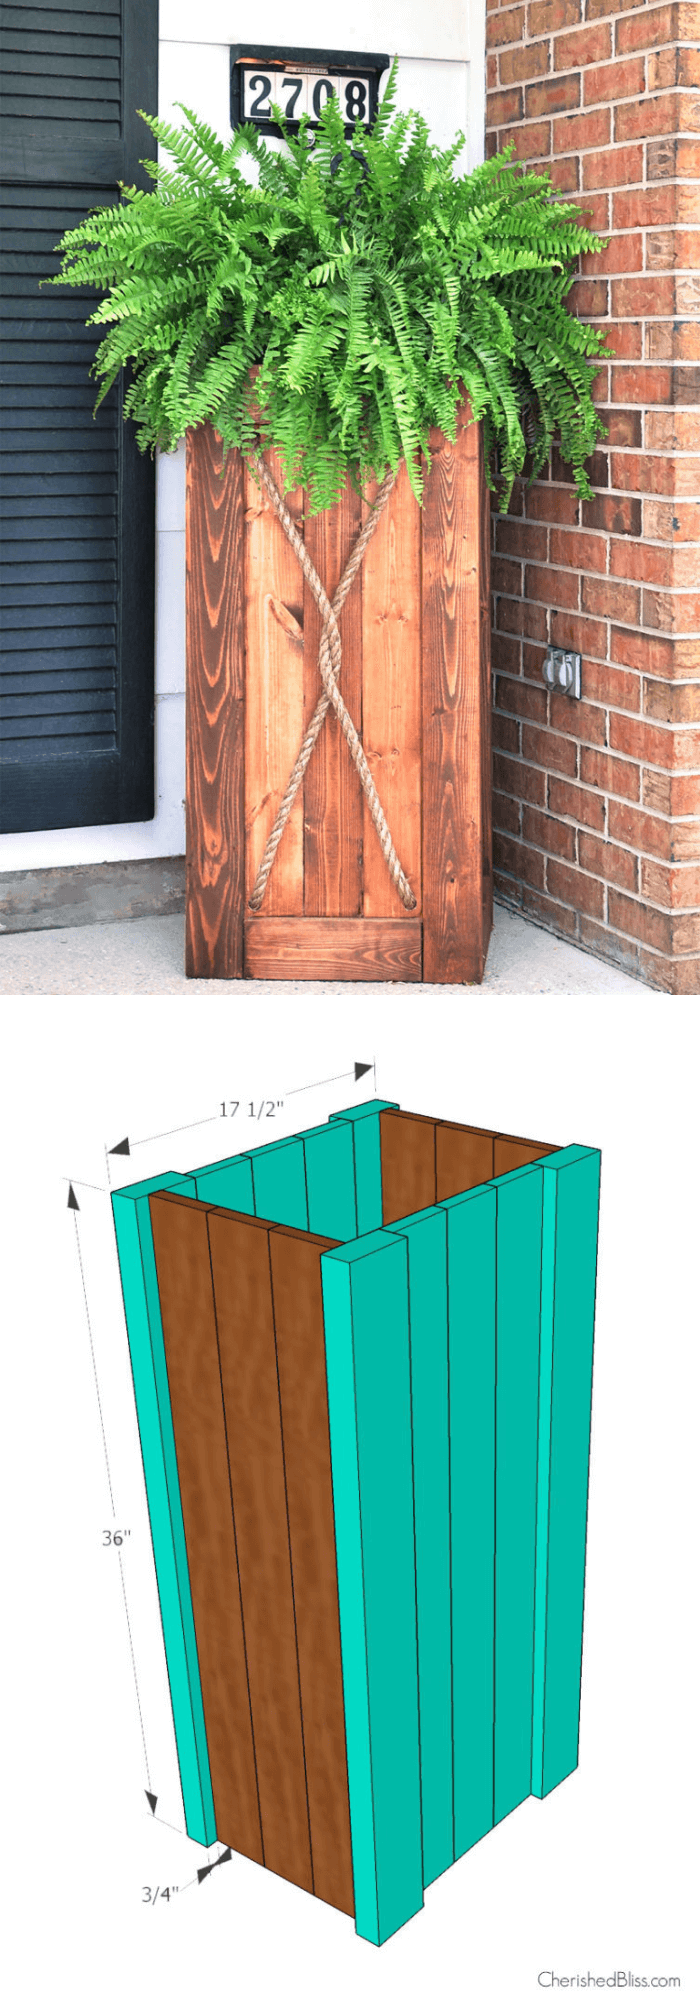 DIY Wooden Planter Plans